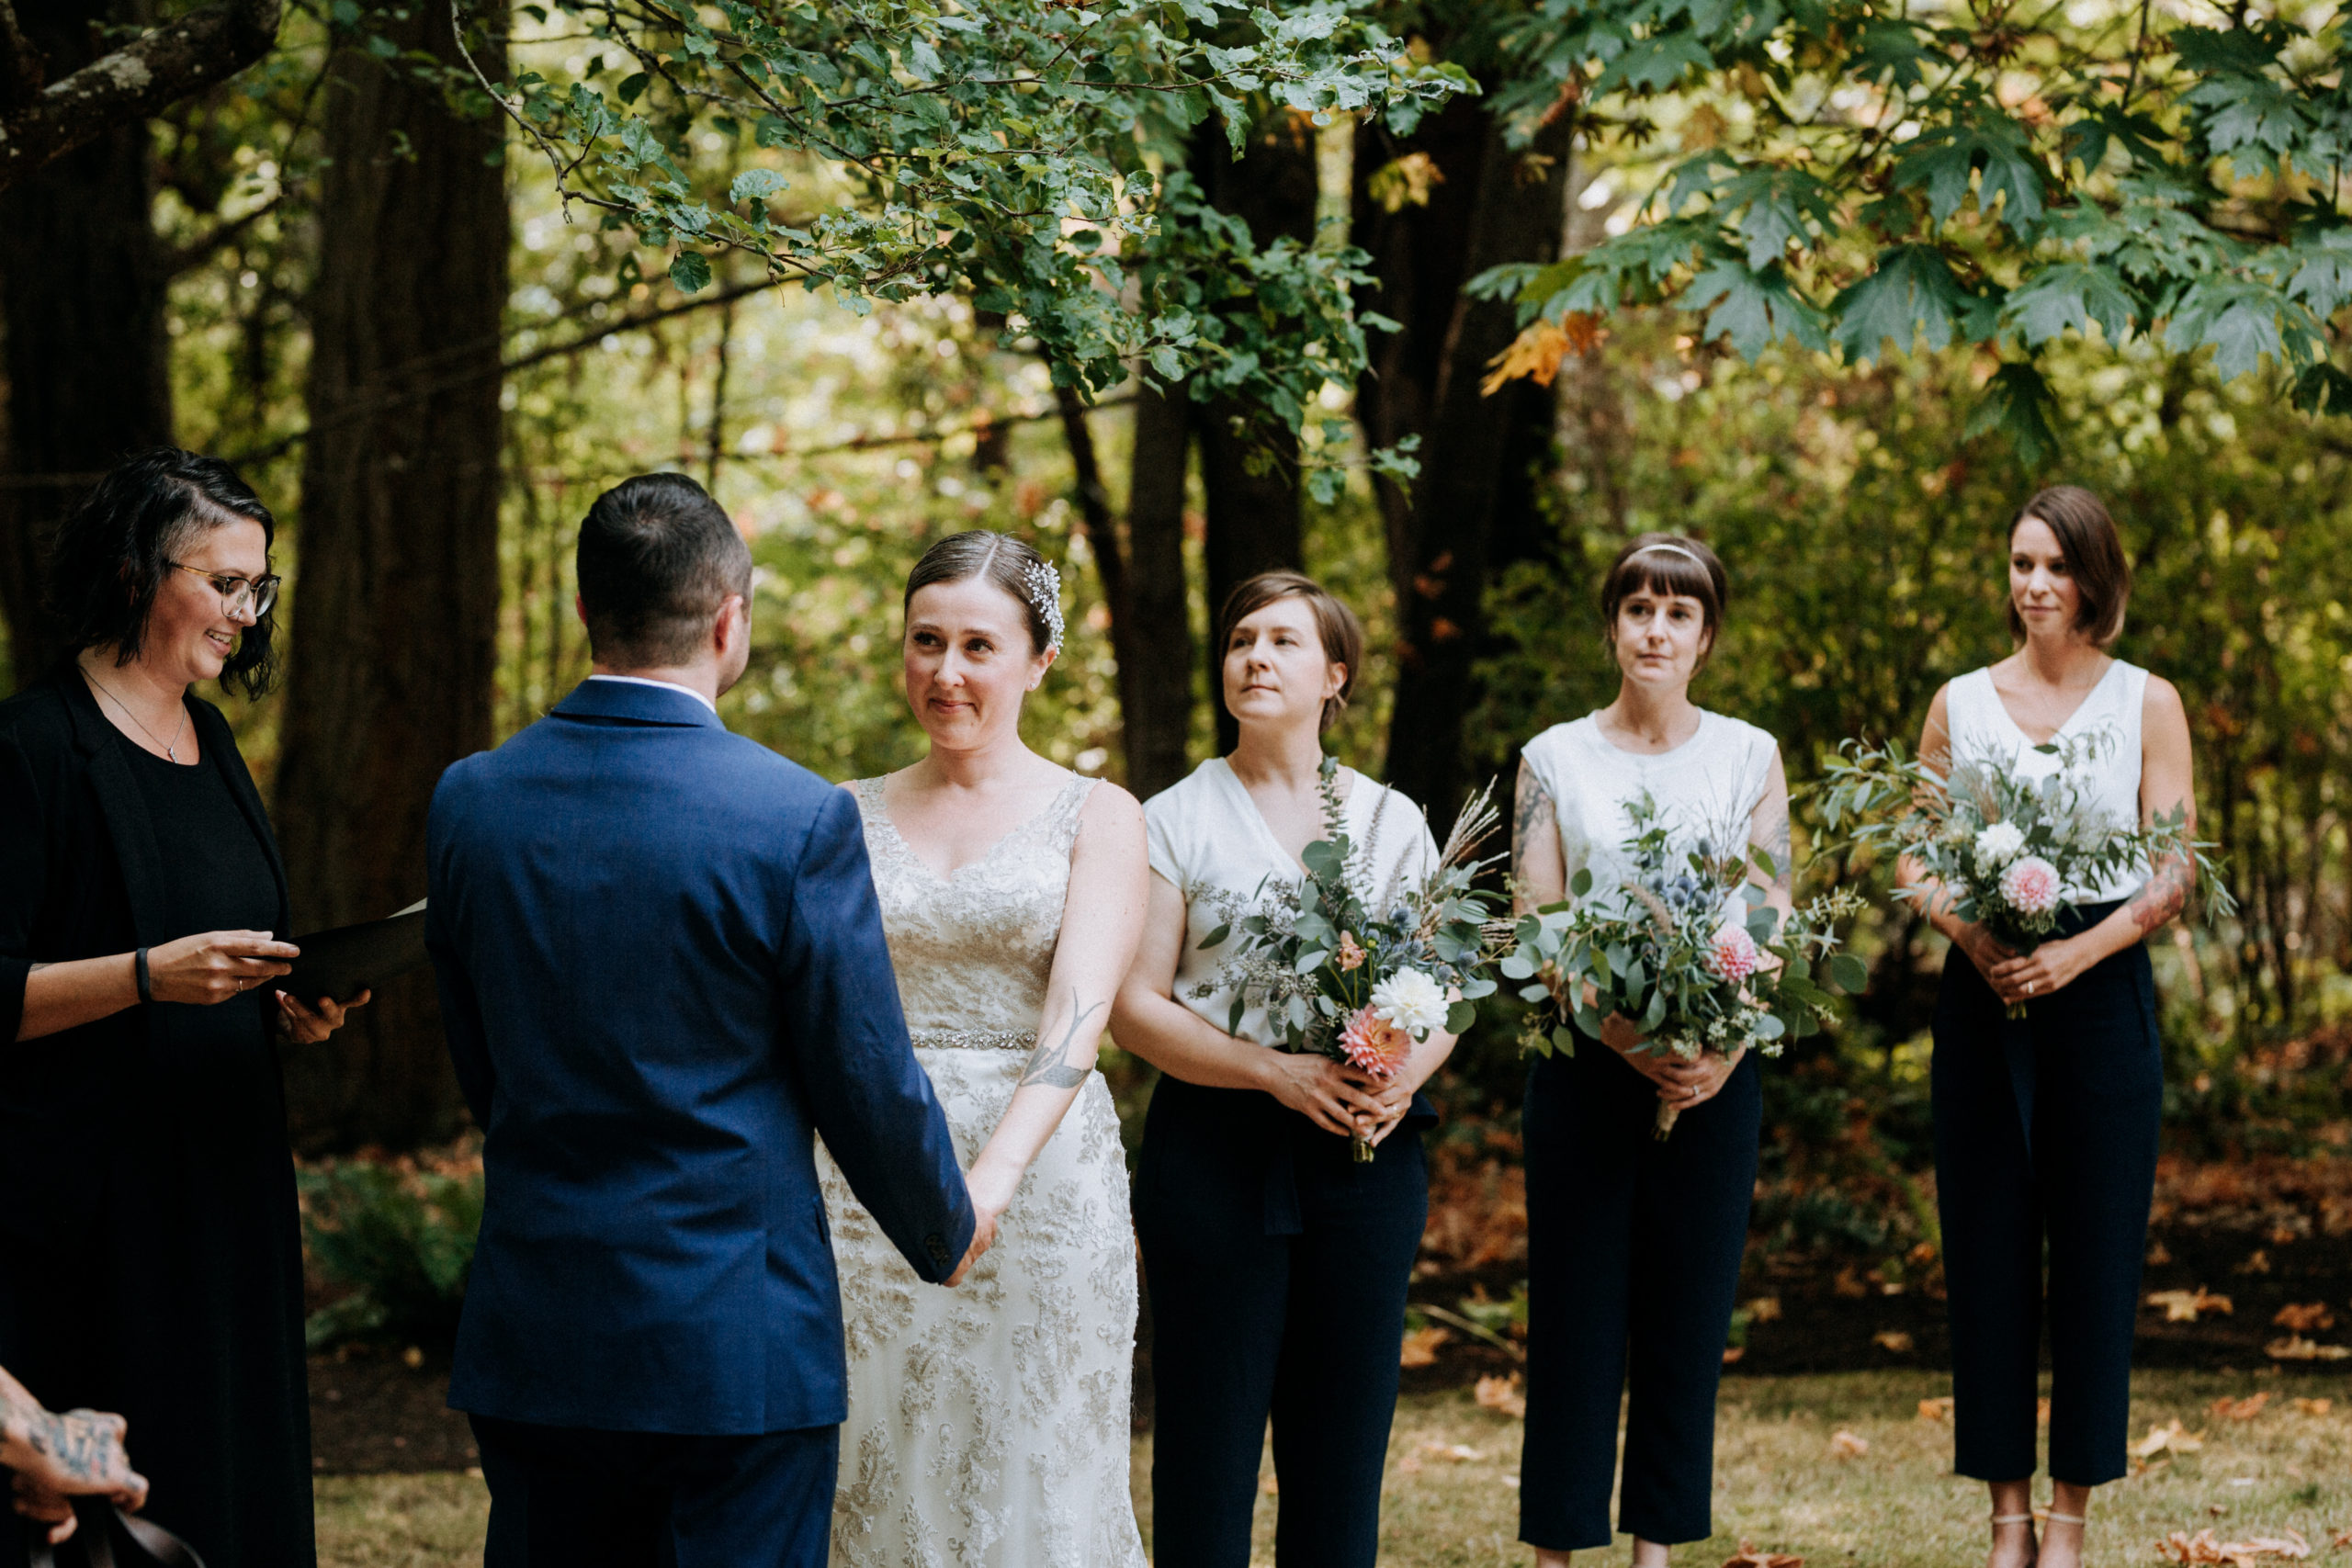 Victoria wedding with Officiant Chris-Ann from Young Hip & Married